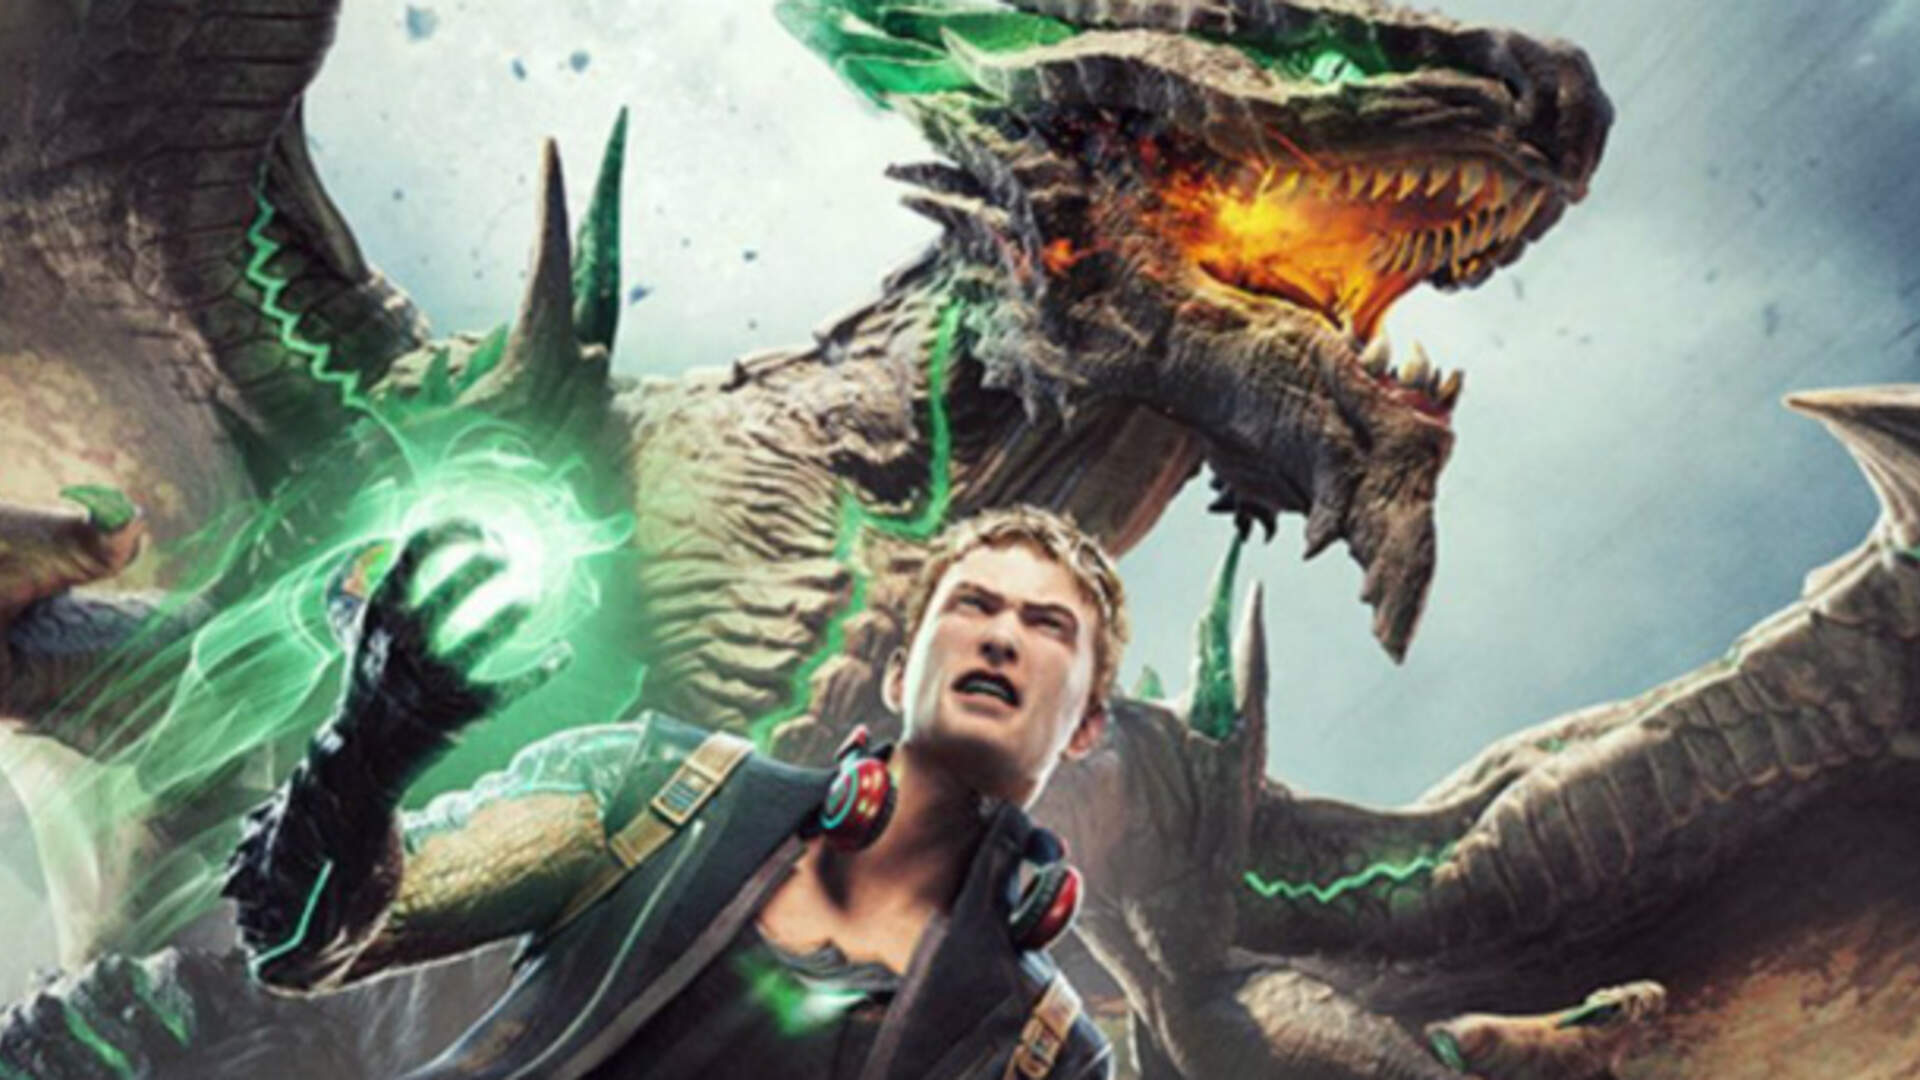 Bayonetta Director Explains How Canceled Scalebound Can Help Future Platinum Games